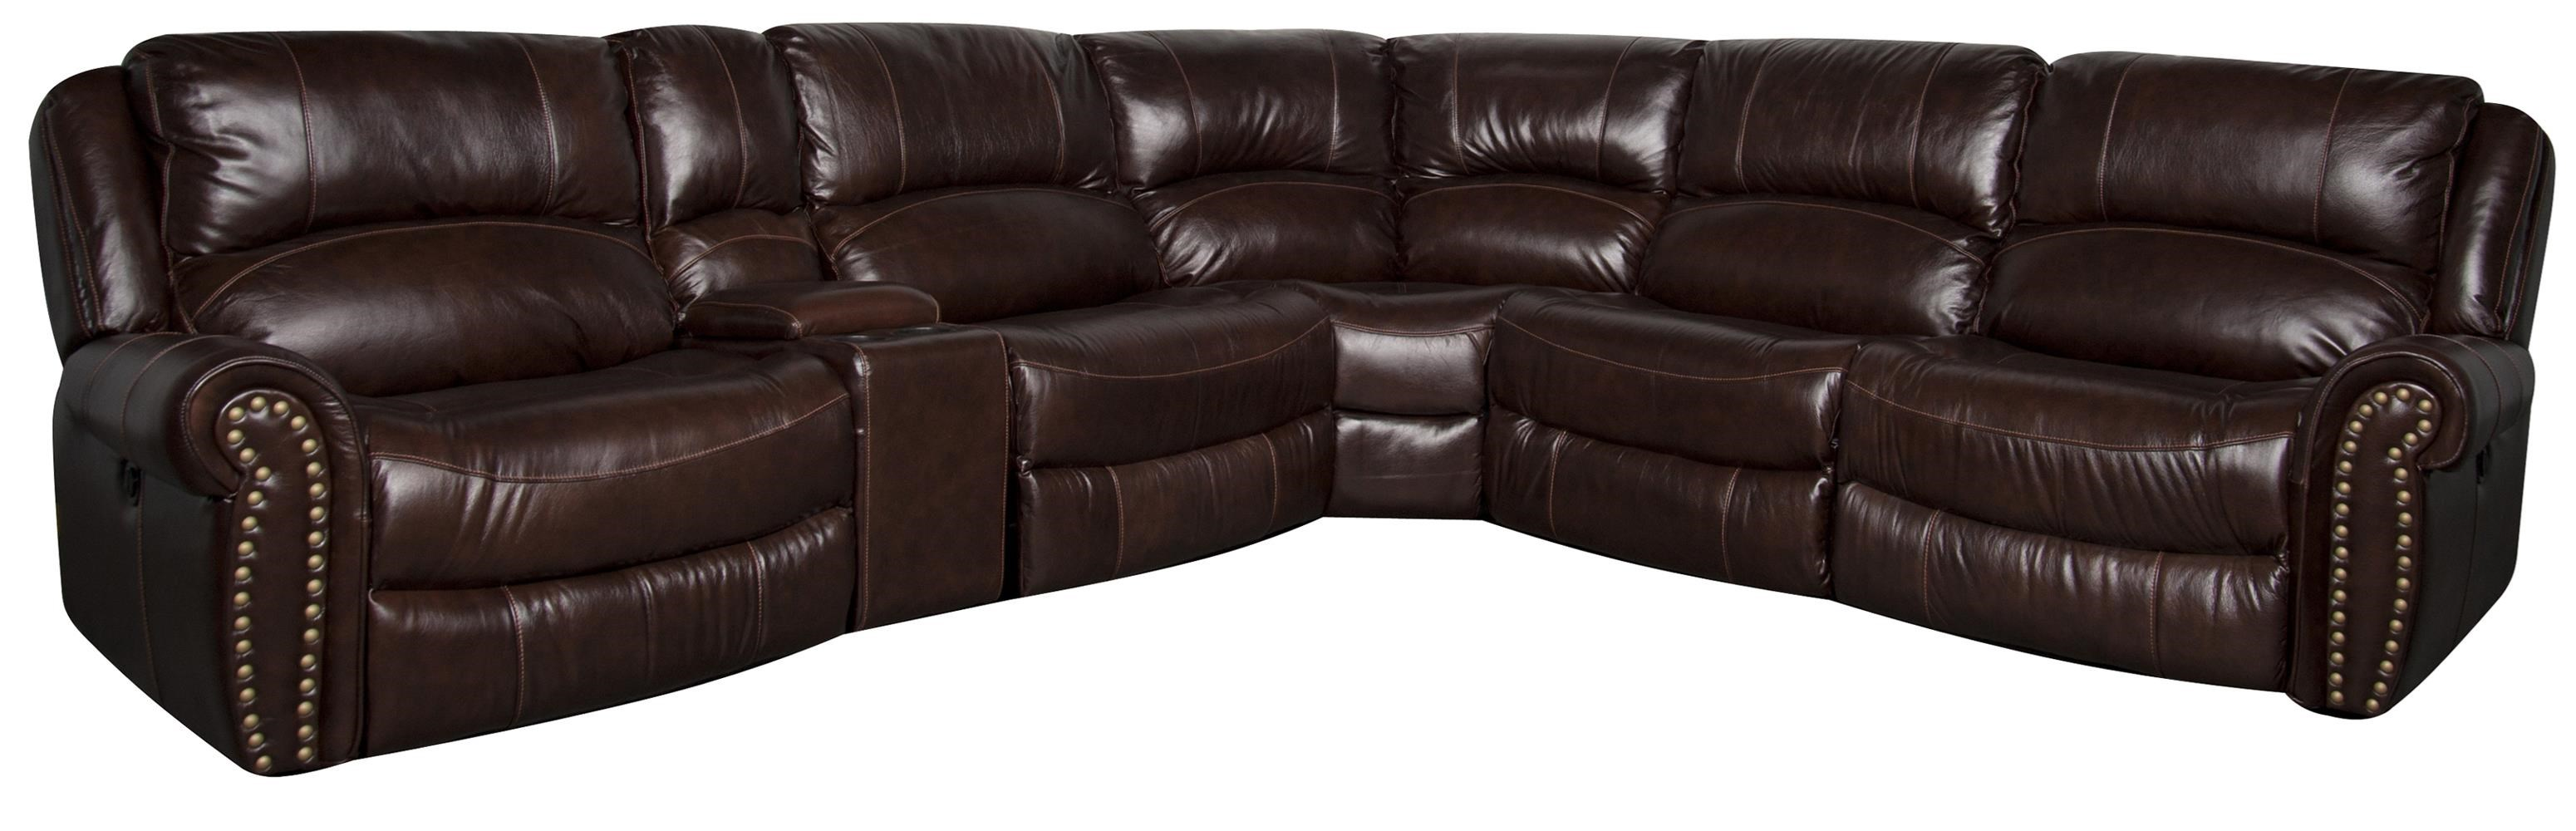 Morris Home Furnishings Fleming Fleming Leather-Match* PWR Sectional - Item Number: 134229195